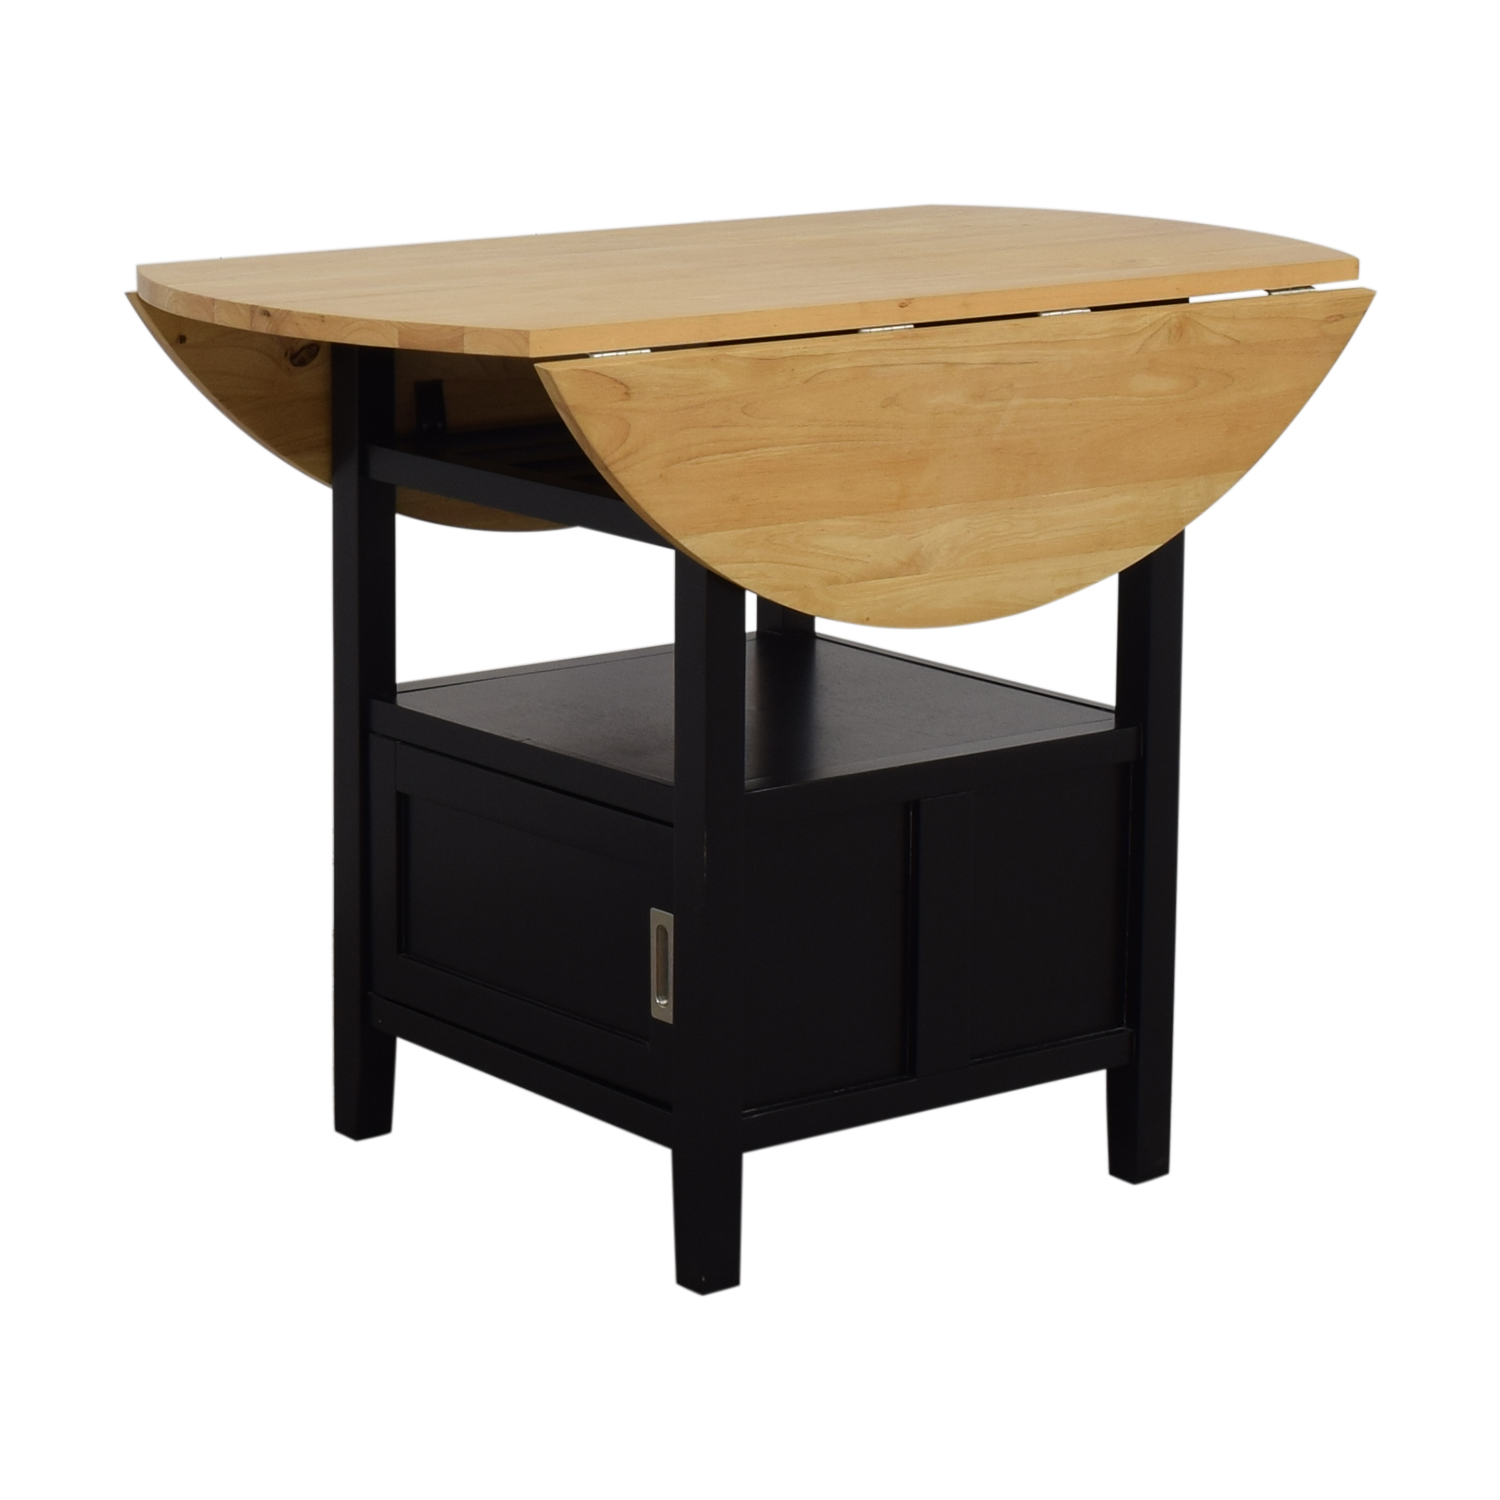 Crate & Barrel Belmont High Dining Table with Storage / Tables